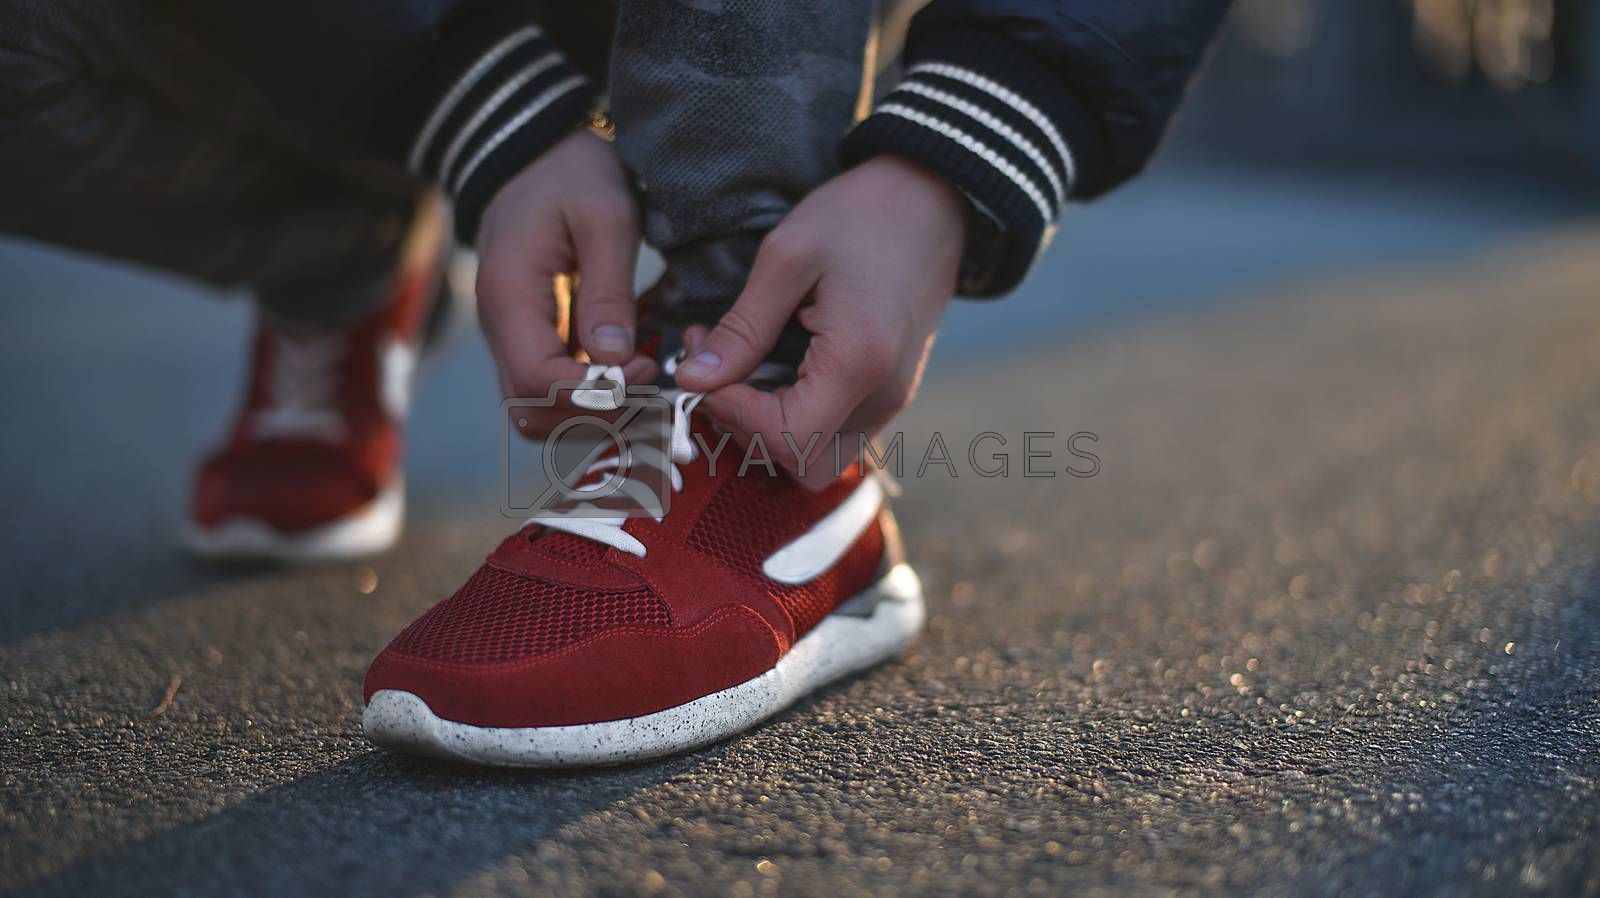 Hands of sportsman with pedometer tying shoelaces on sporty sneaker. Running equipment concept. Shoelaces tying by male hands.